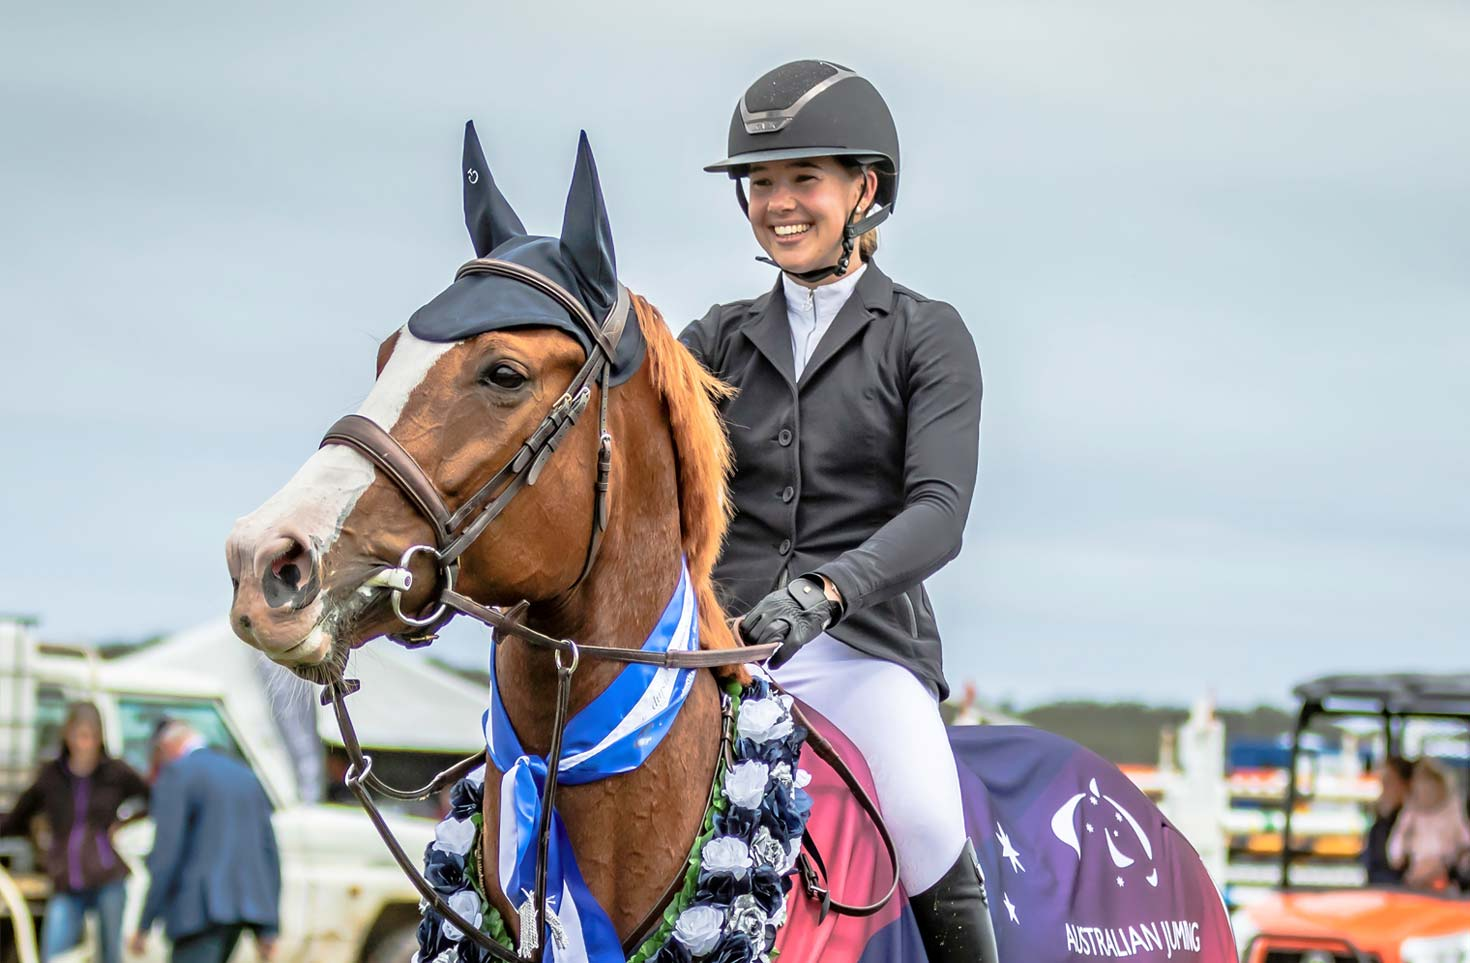 Madeline Sinderberry – 2019 Australian Jumping Young Rider Series Champion